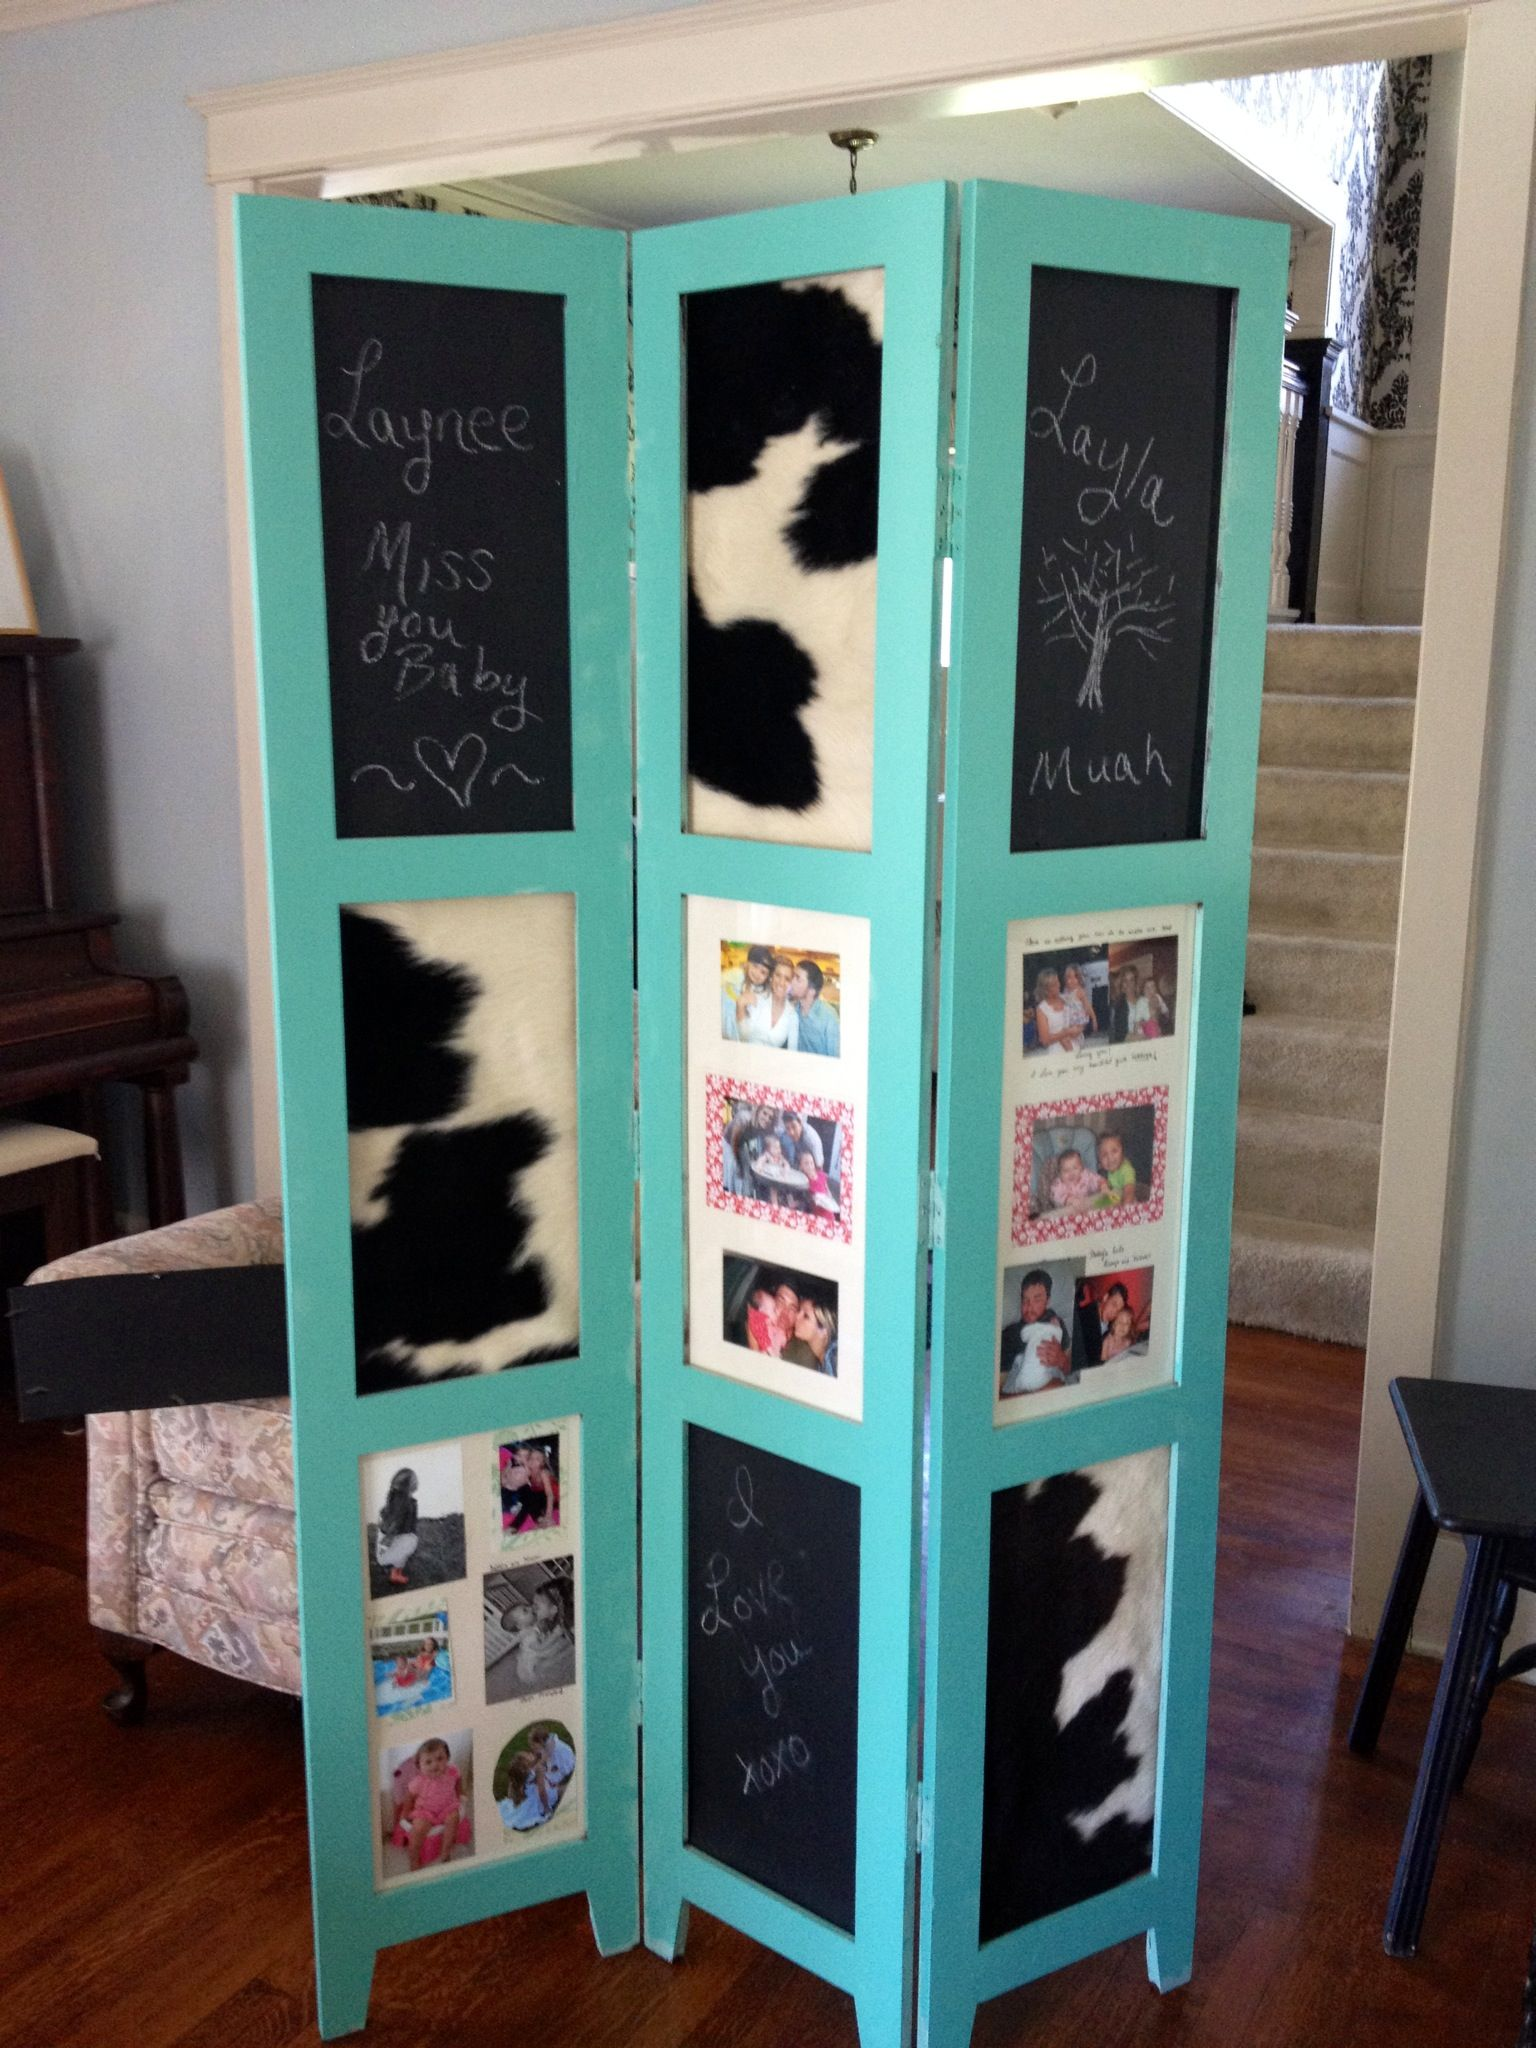 DIY frame repurpose! #teal #cowhide #chalkboard could also add cork ...